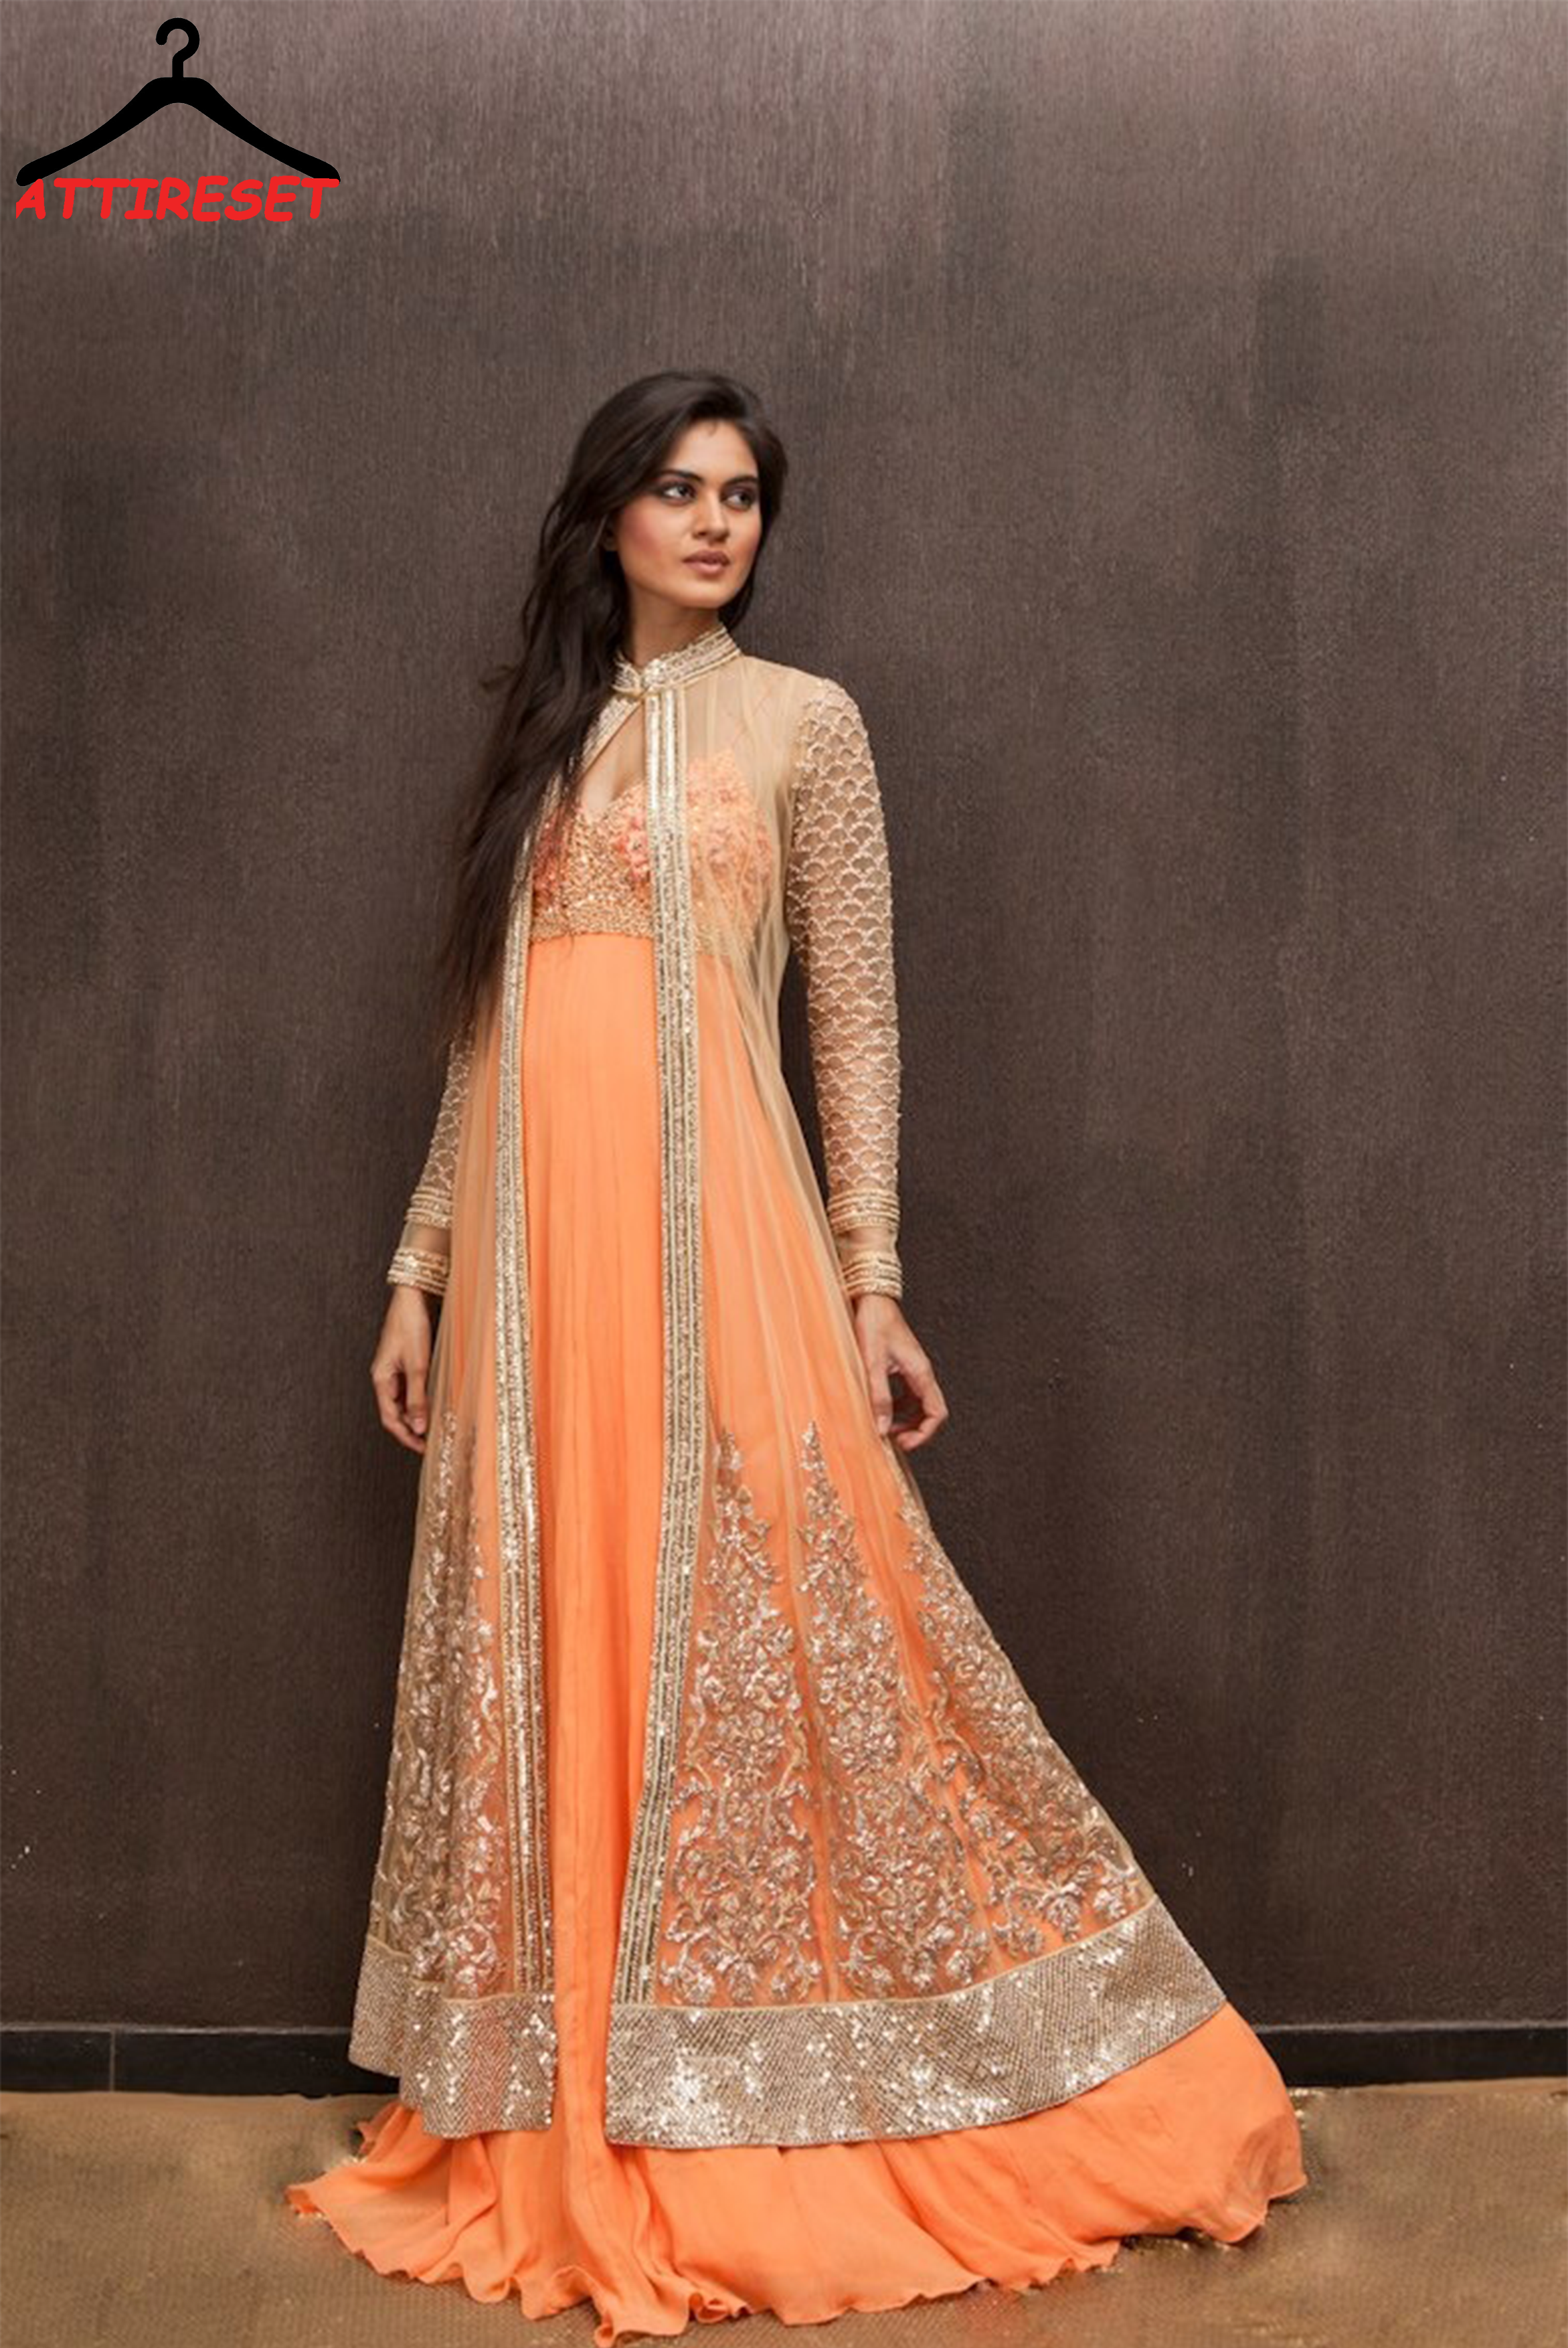 Latest Indian Long Dresses How To Select